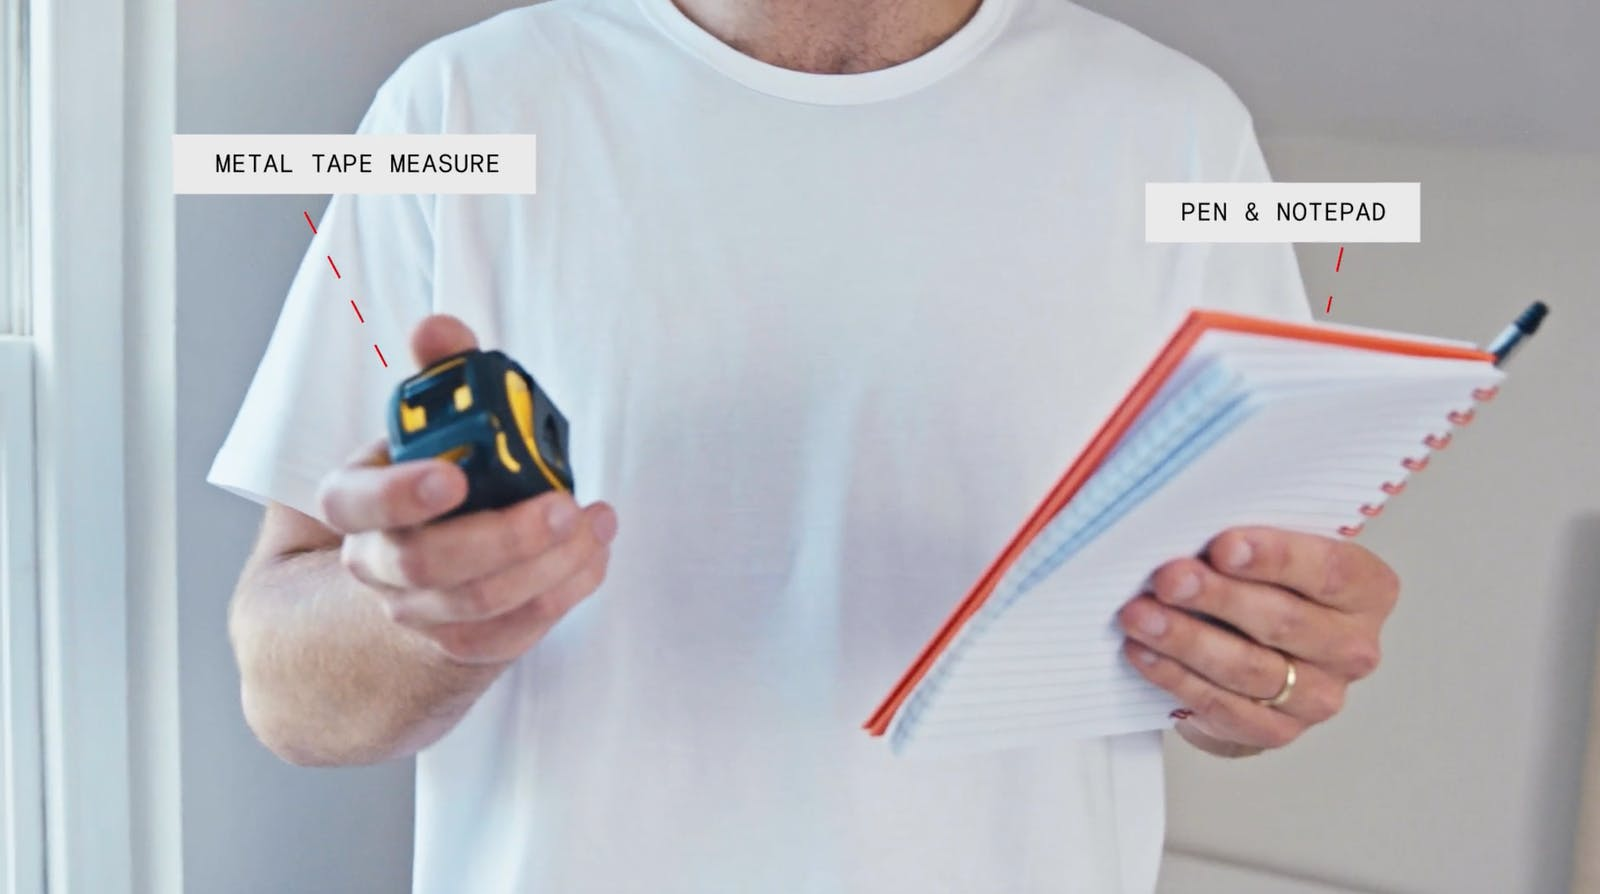 Man holding metal tape measure and pen & notepad